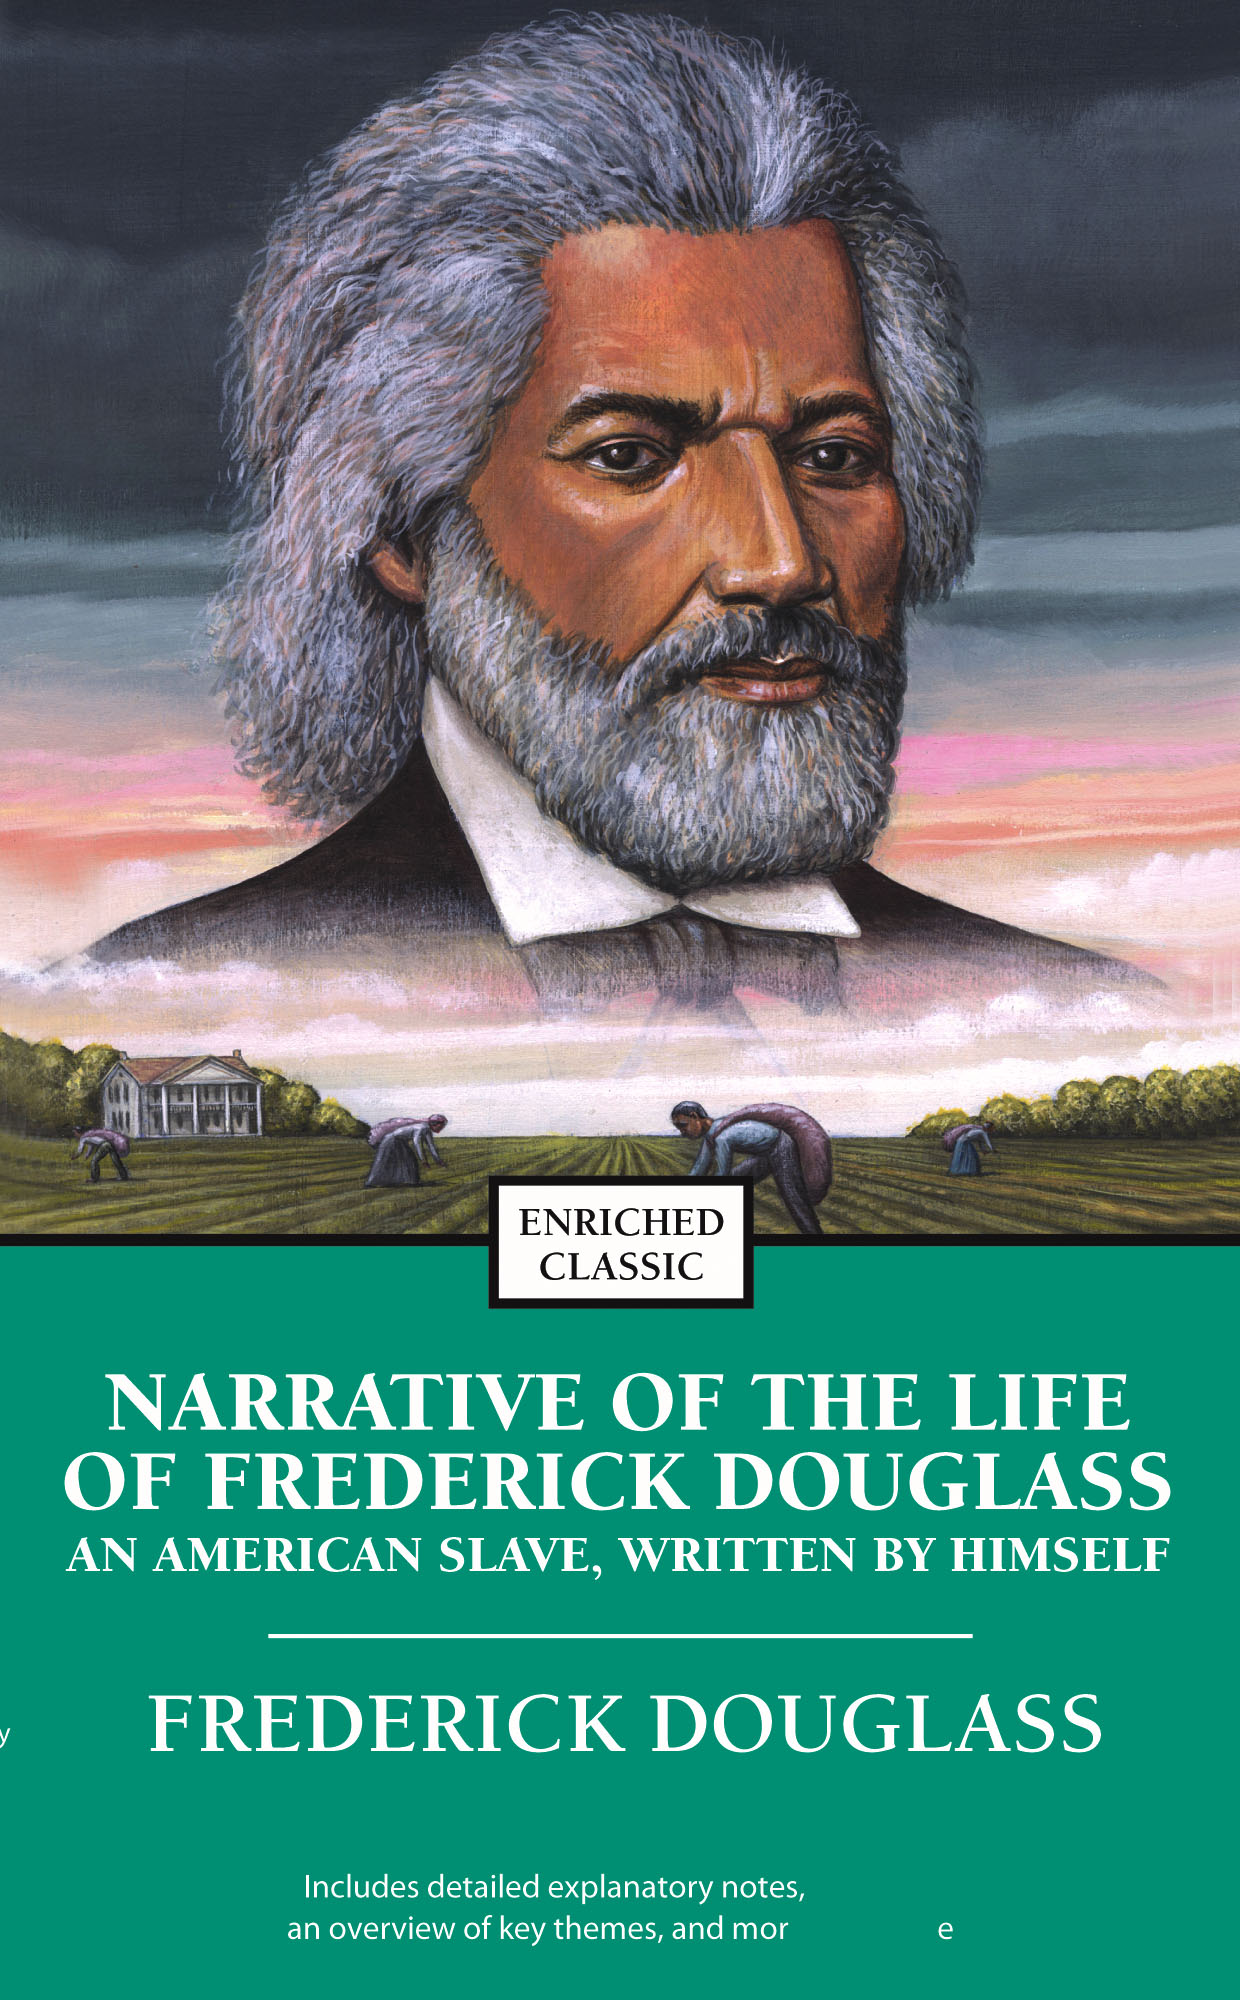 narrative of the life of frederick douglass book by frederick  cvr9780743487771 9780743487771 hr narrative of the life of frederick douglass